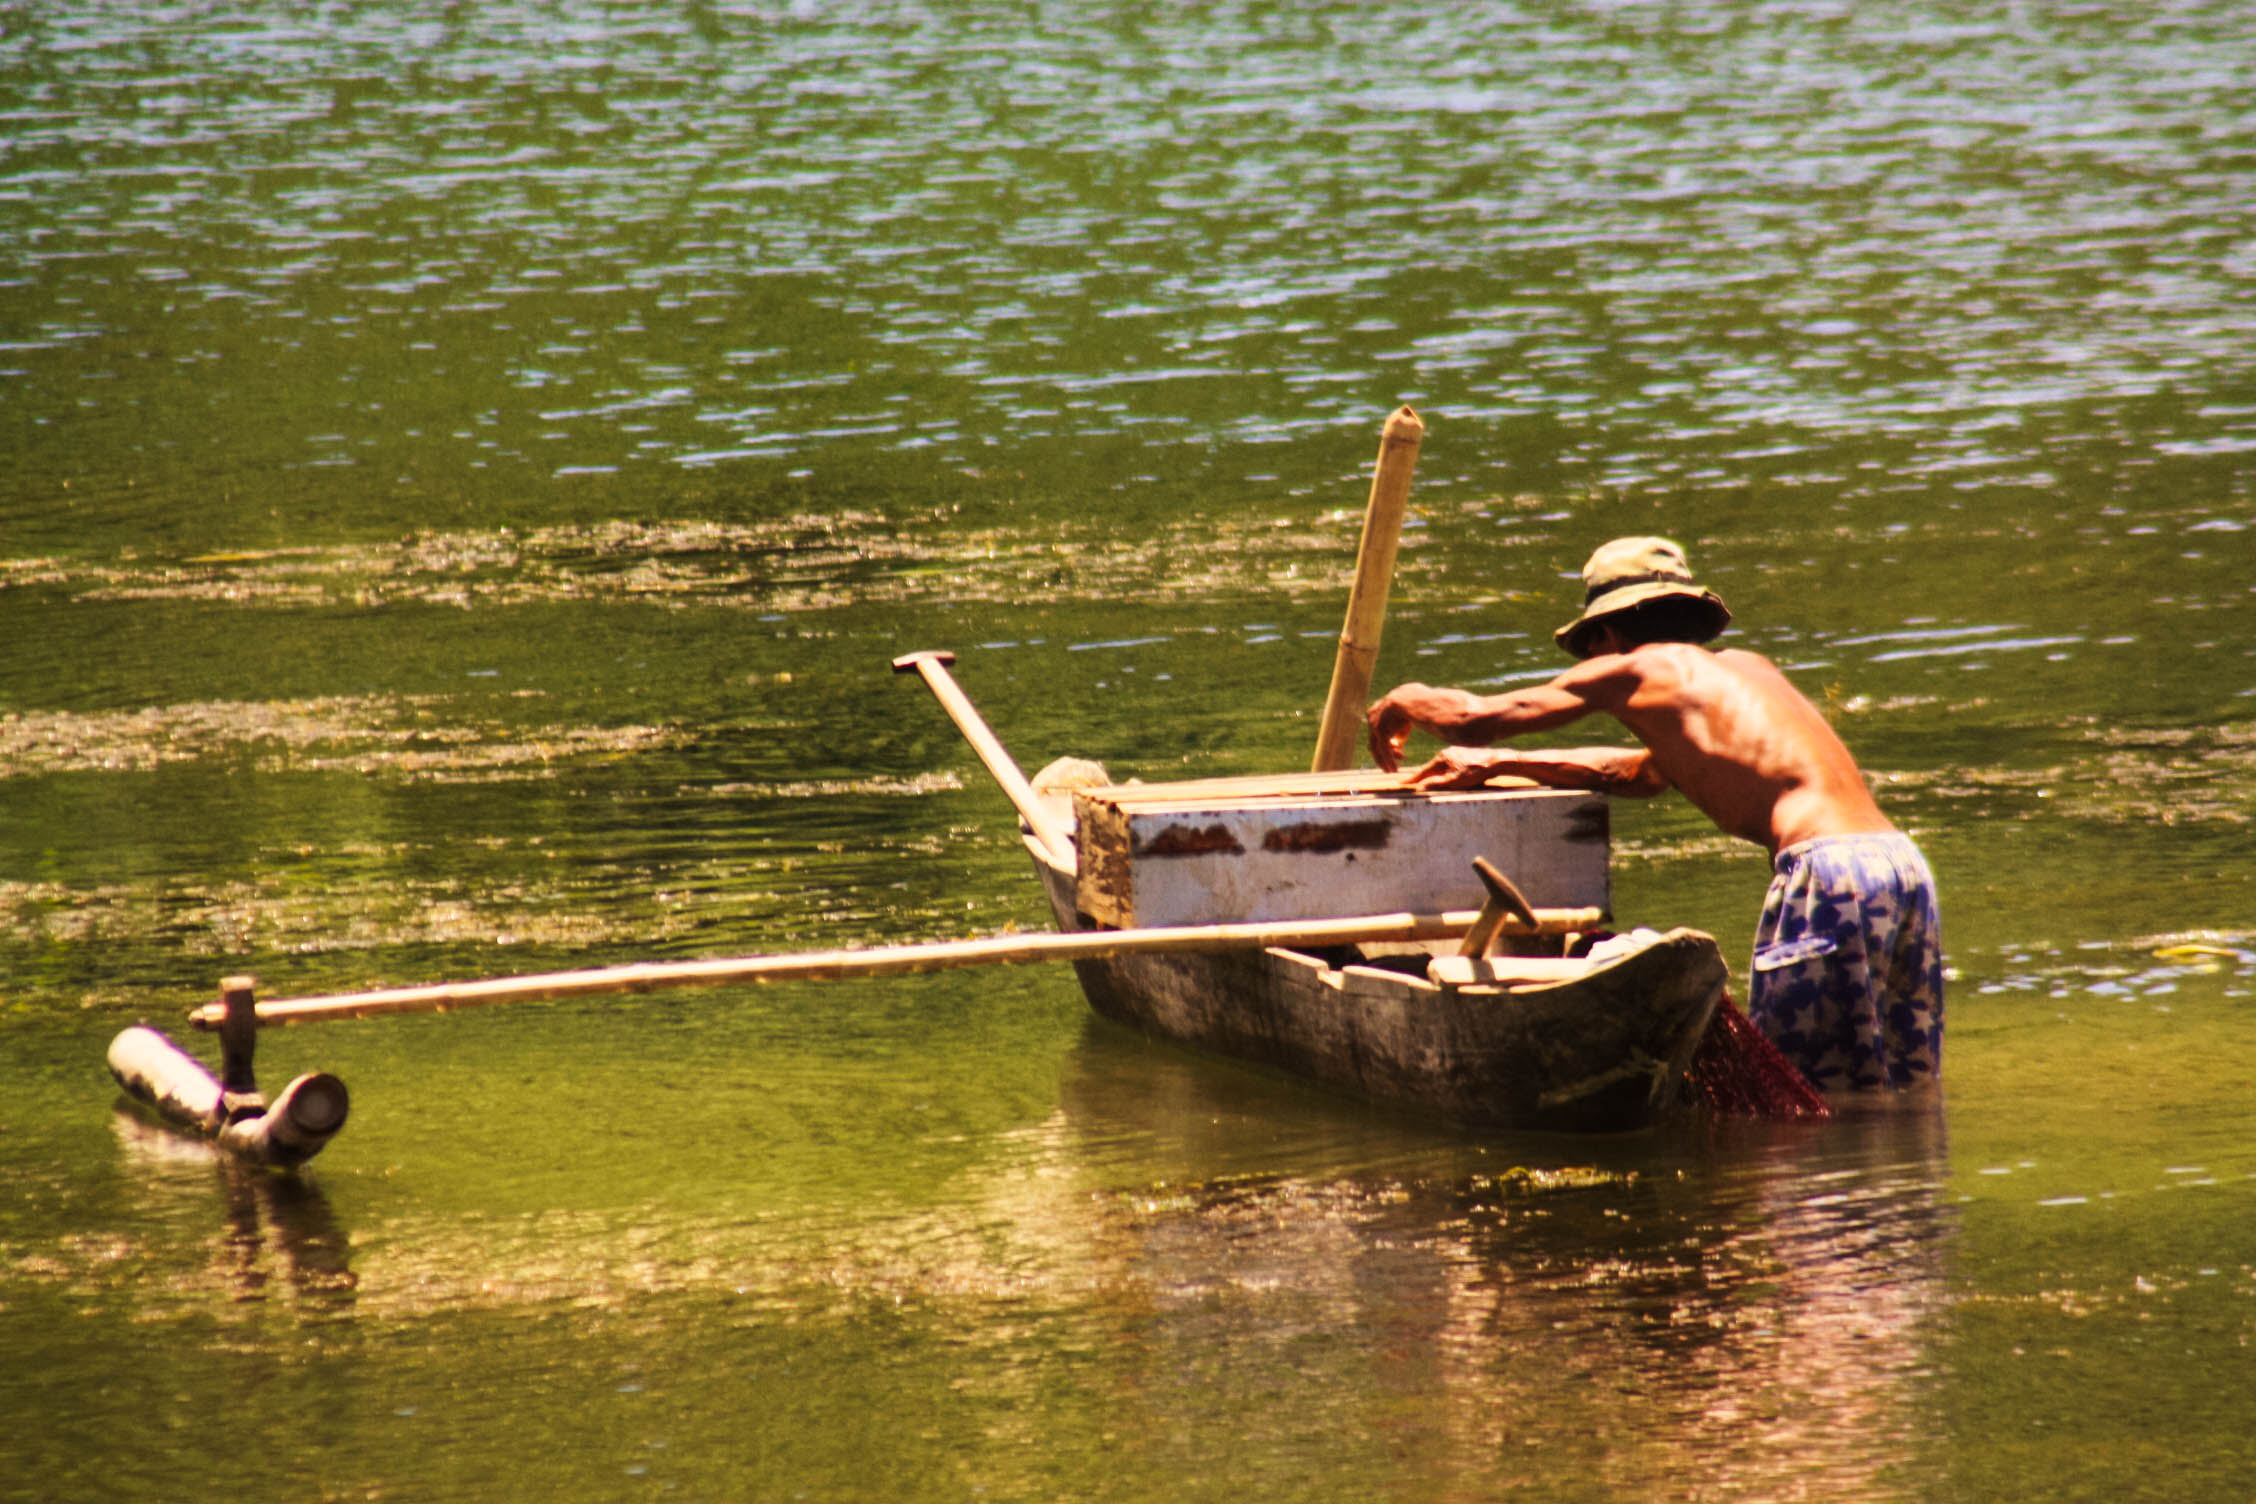 A man standing in murky waters, hauling in an outrigger boat